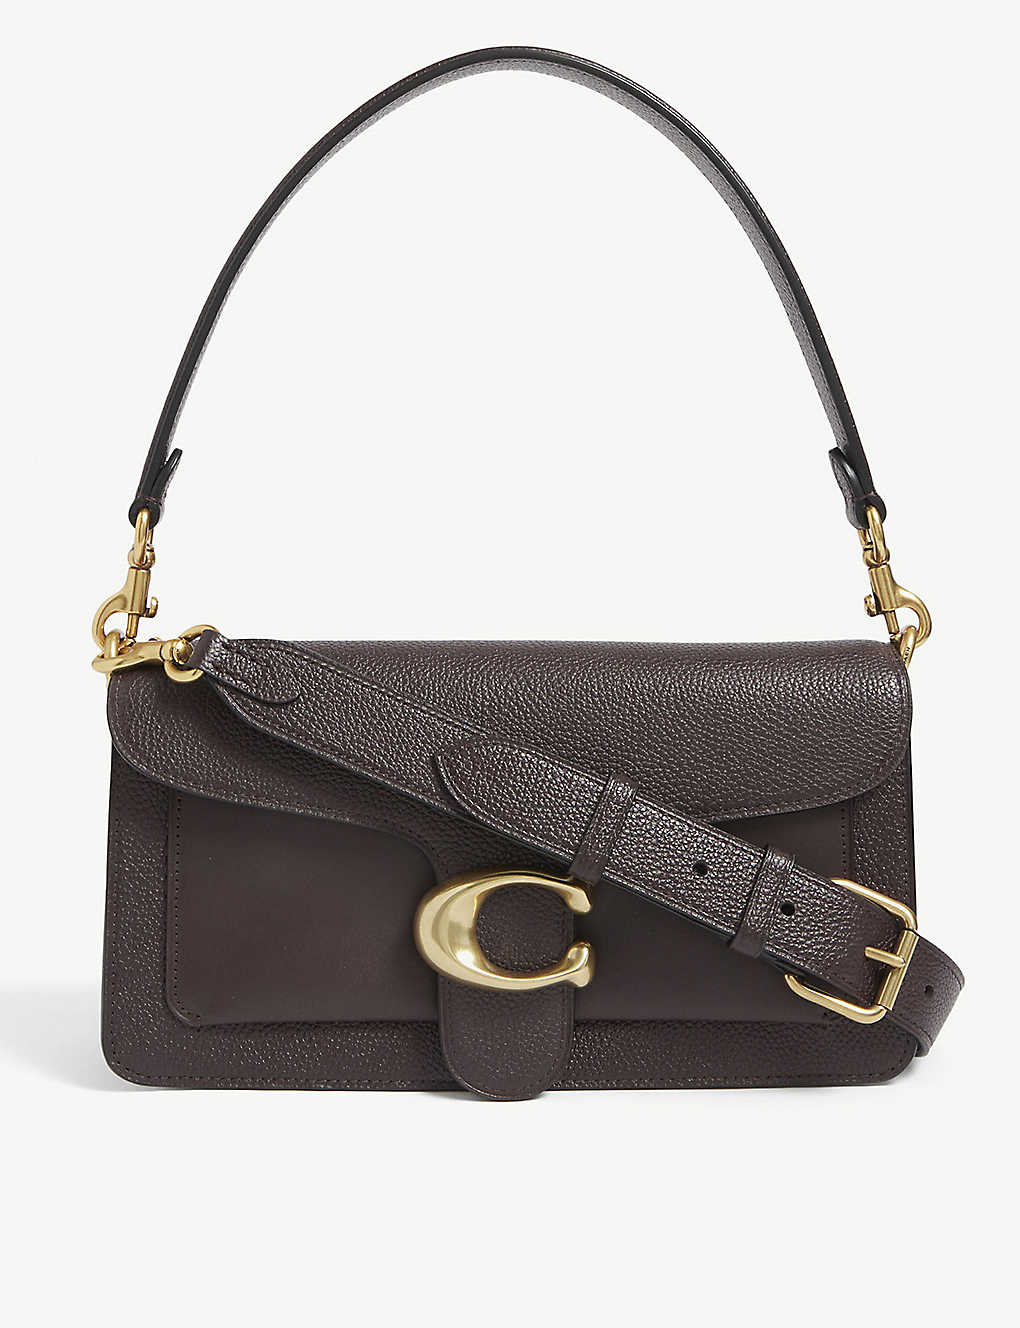 COACH: Tabby small leather shoulder bag